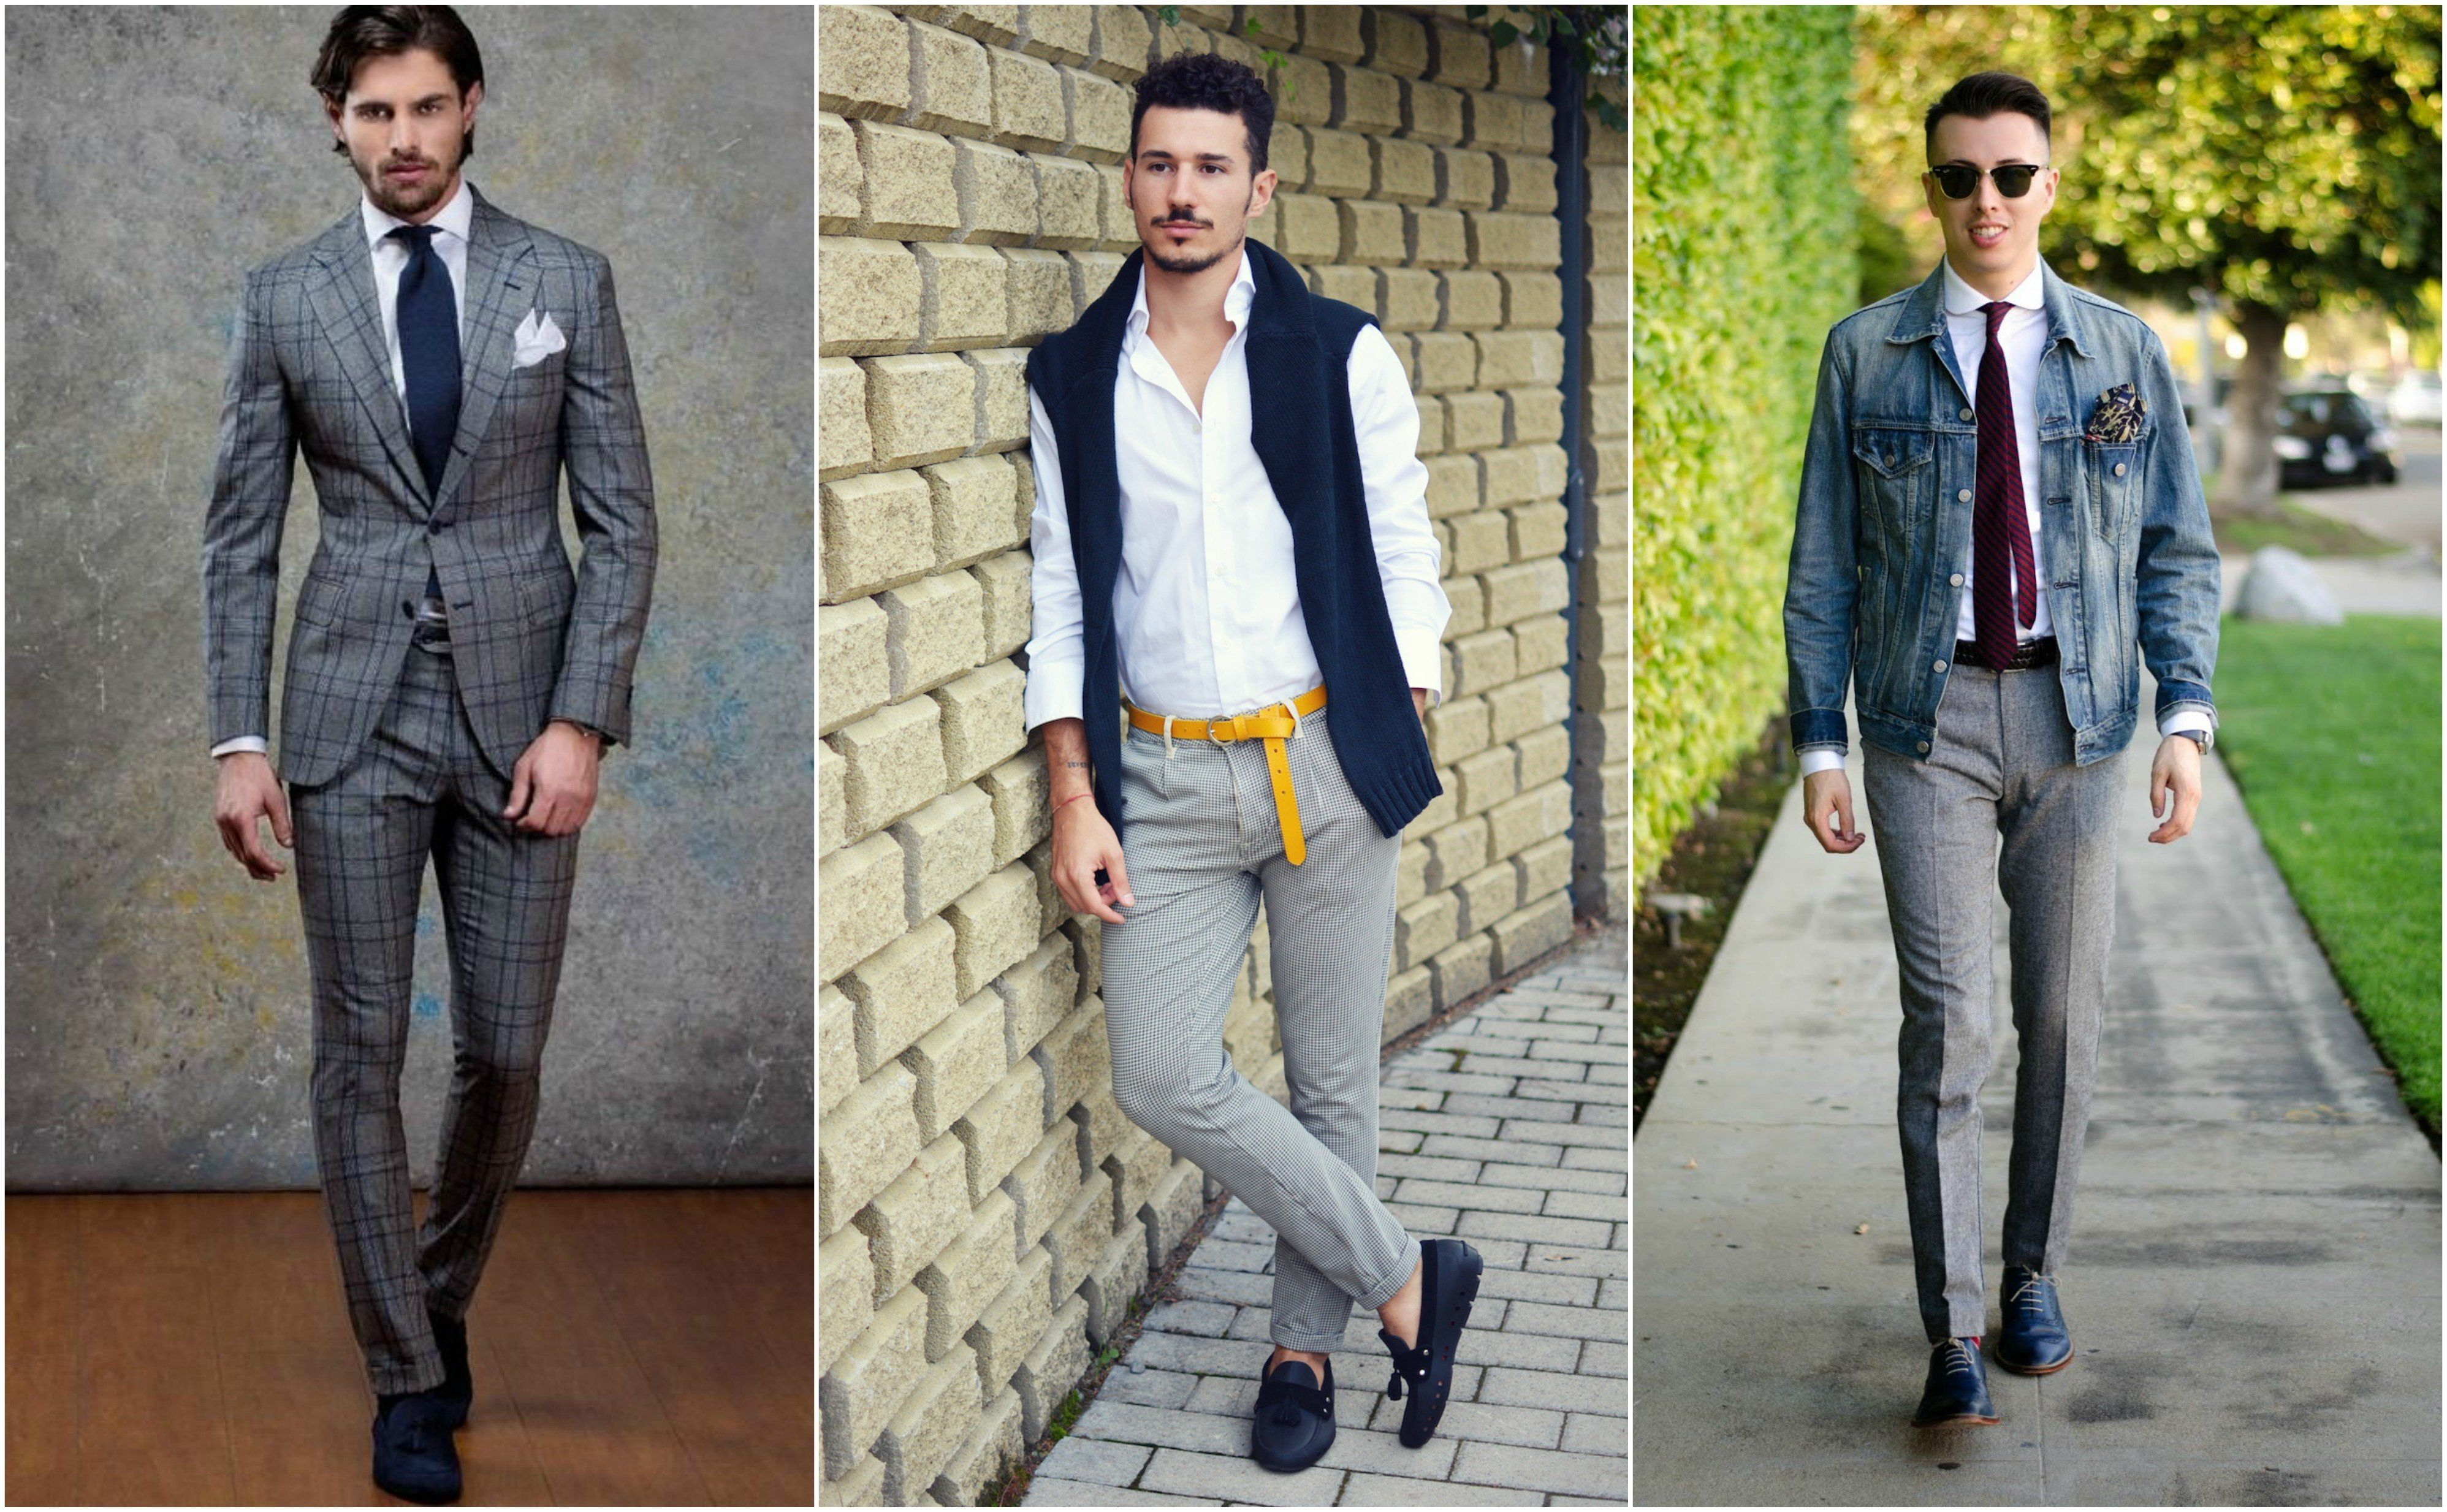 68955b65662 What color pants go with navy blue shoes  - Quora